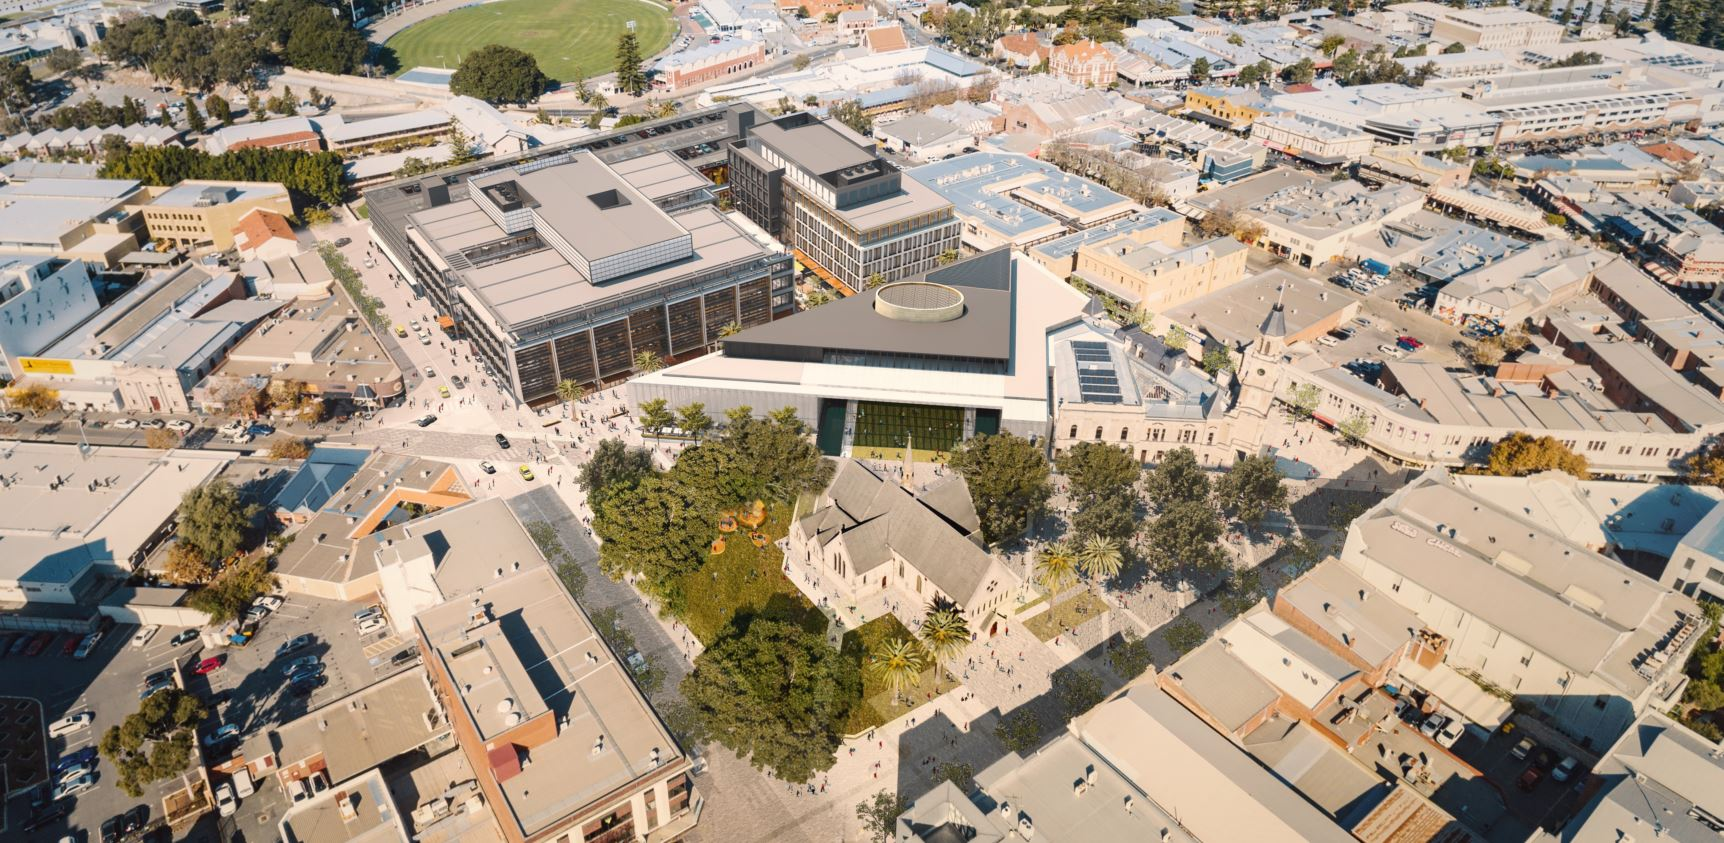 Ariel view of the future Kings Square development